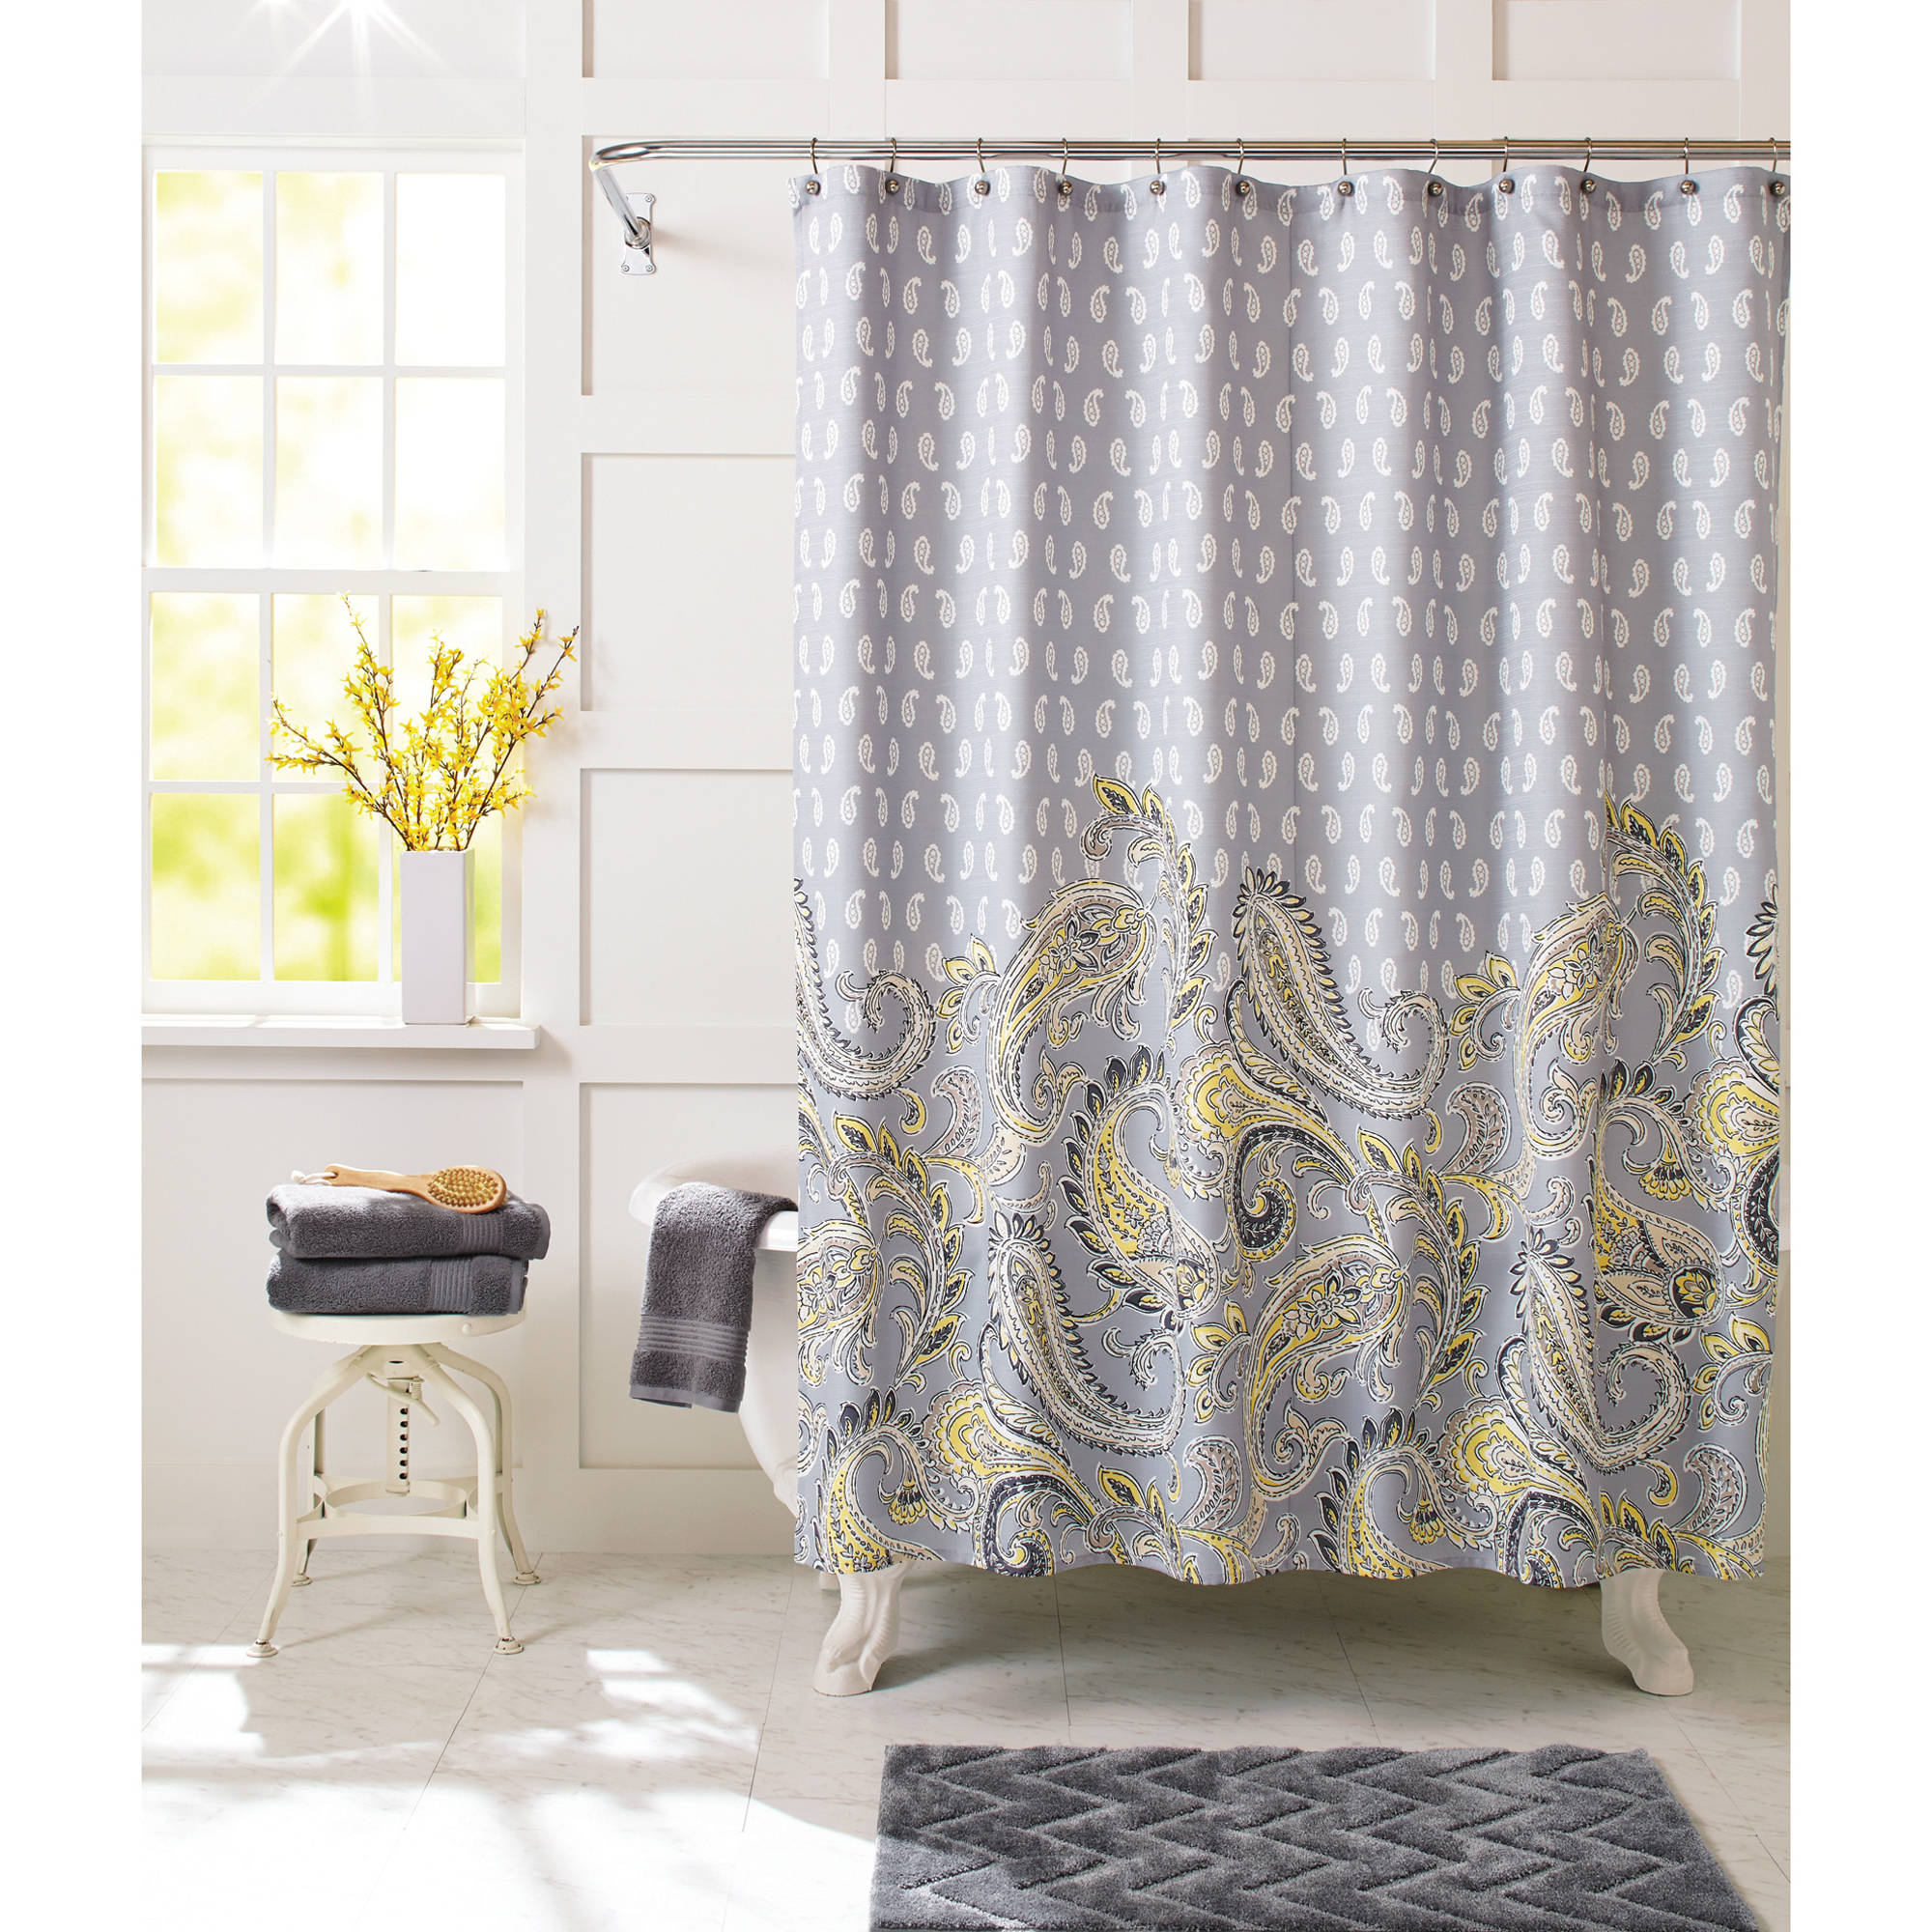 89 Shower Curtains Walmart Pertaining To Sizing 2000 X Shower Curtains Walmart Pertaining To